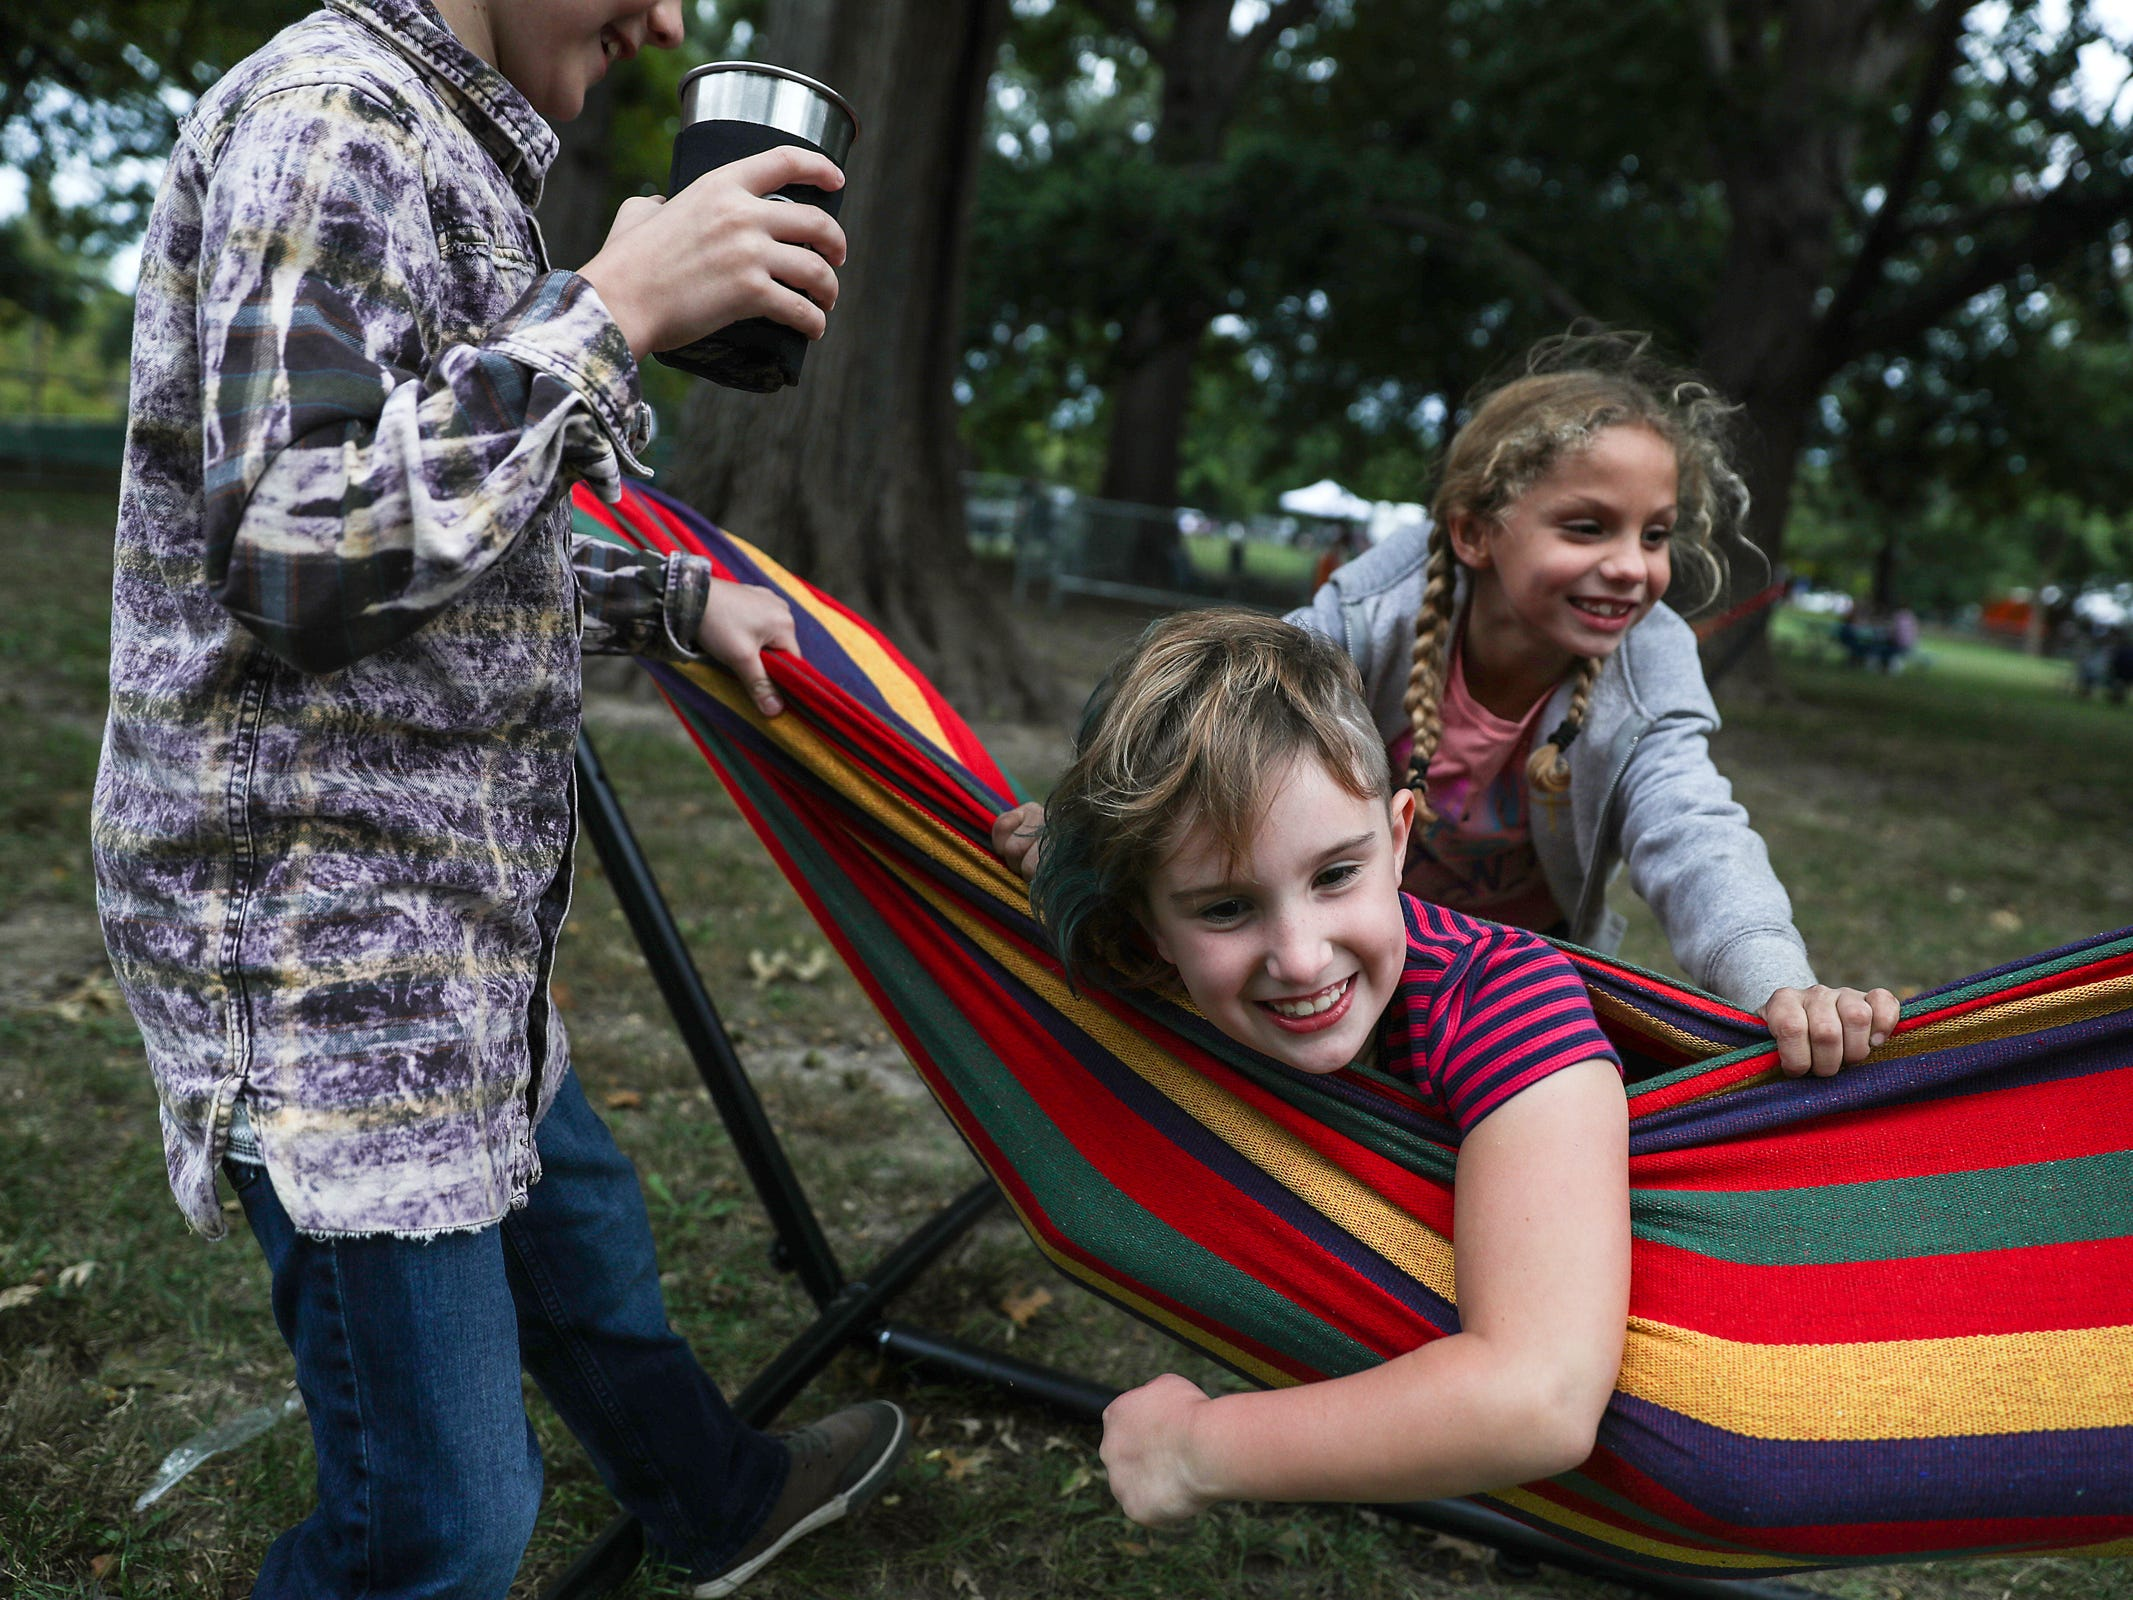 Kids play on hammocks at the inaugural Holler on the Hill music festival at Garfield Park in Indianapolis, Saturday, Sept. 22, 2018.